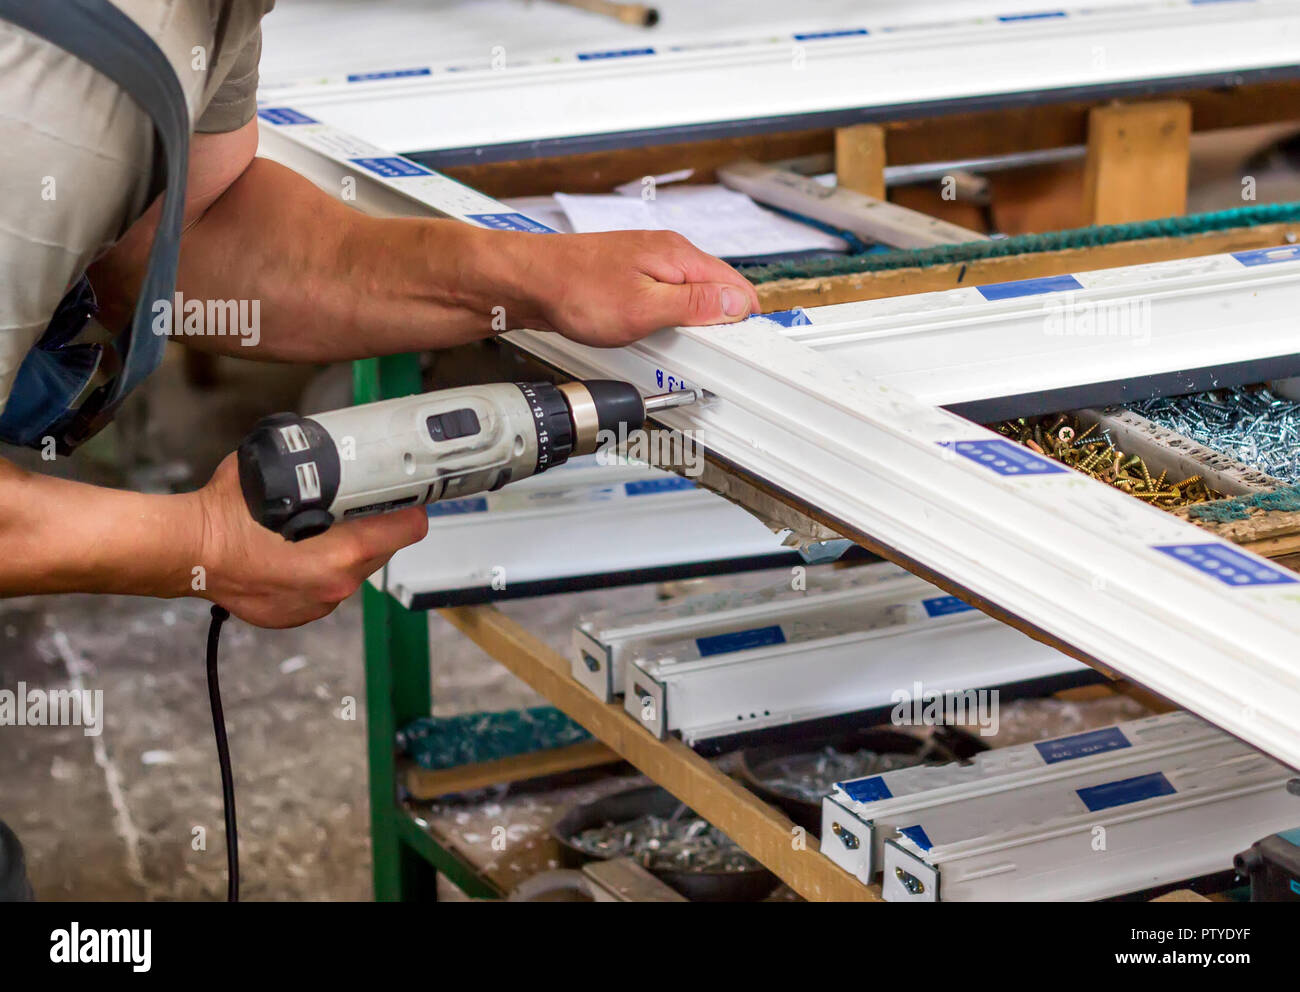 Production of pvc windows, a man screws a screwdriver into a pvc window, close-up, windows pvc Stock Photo